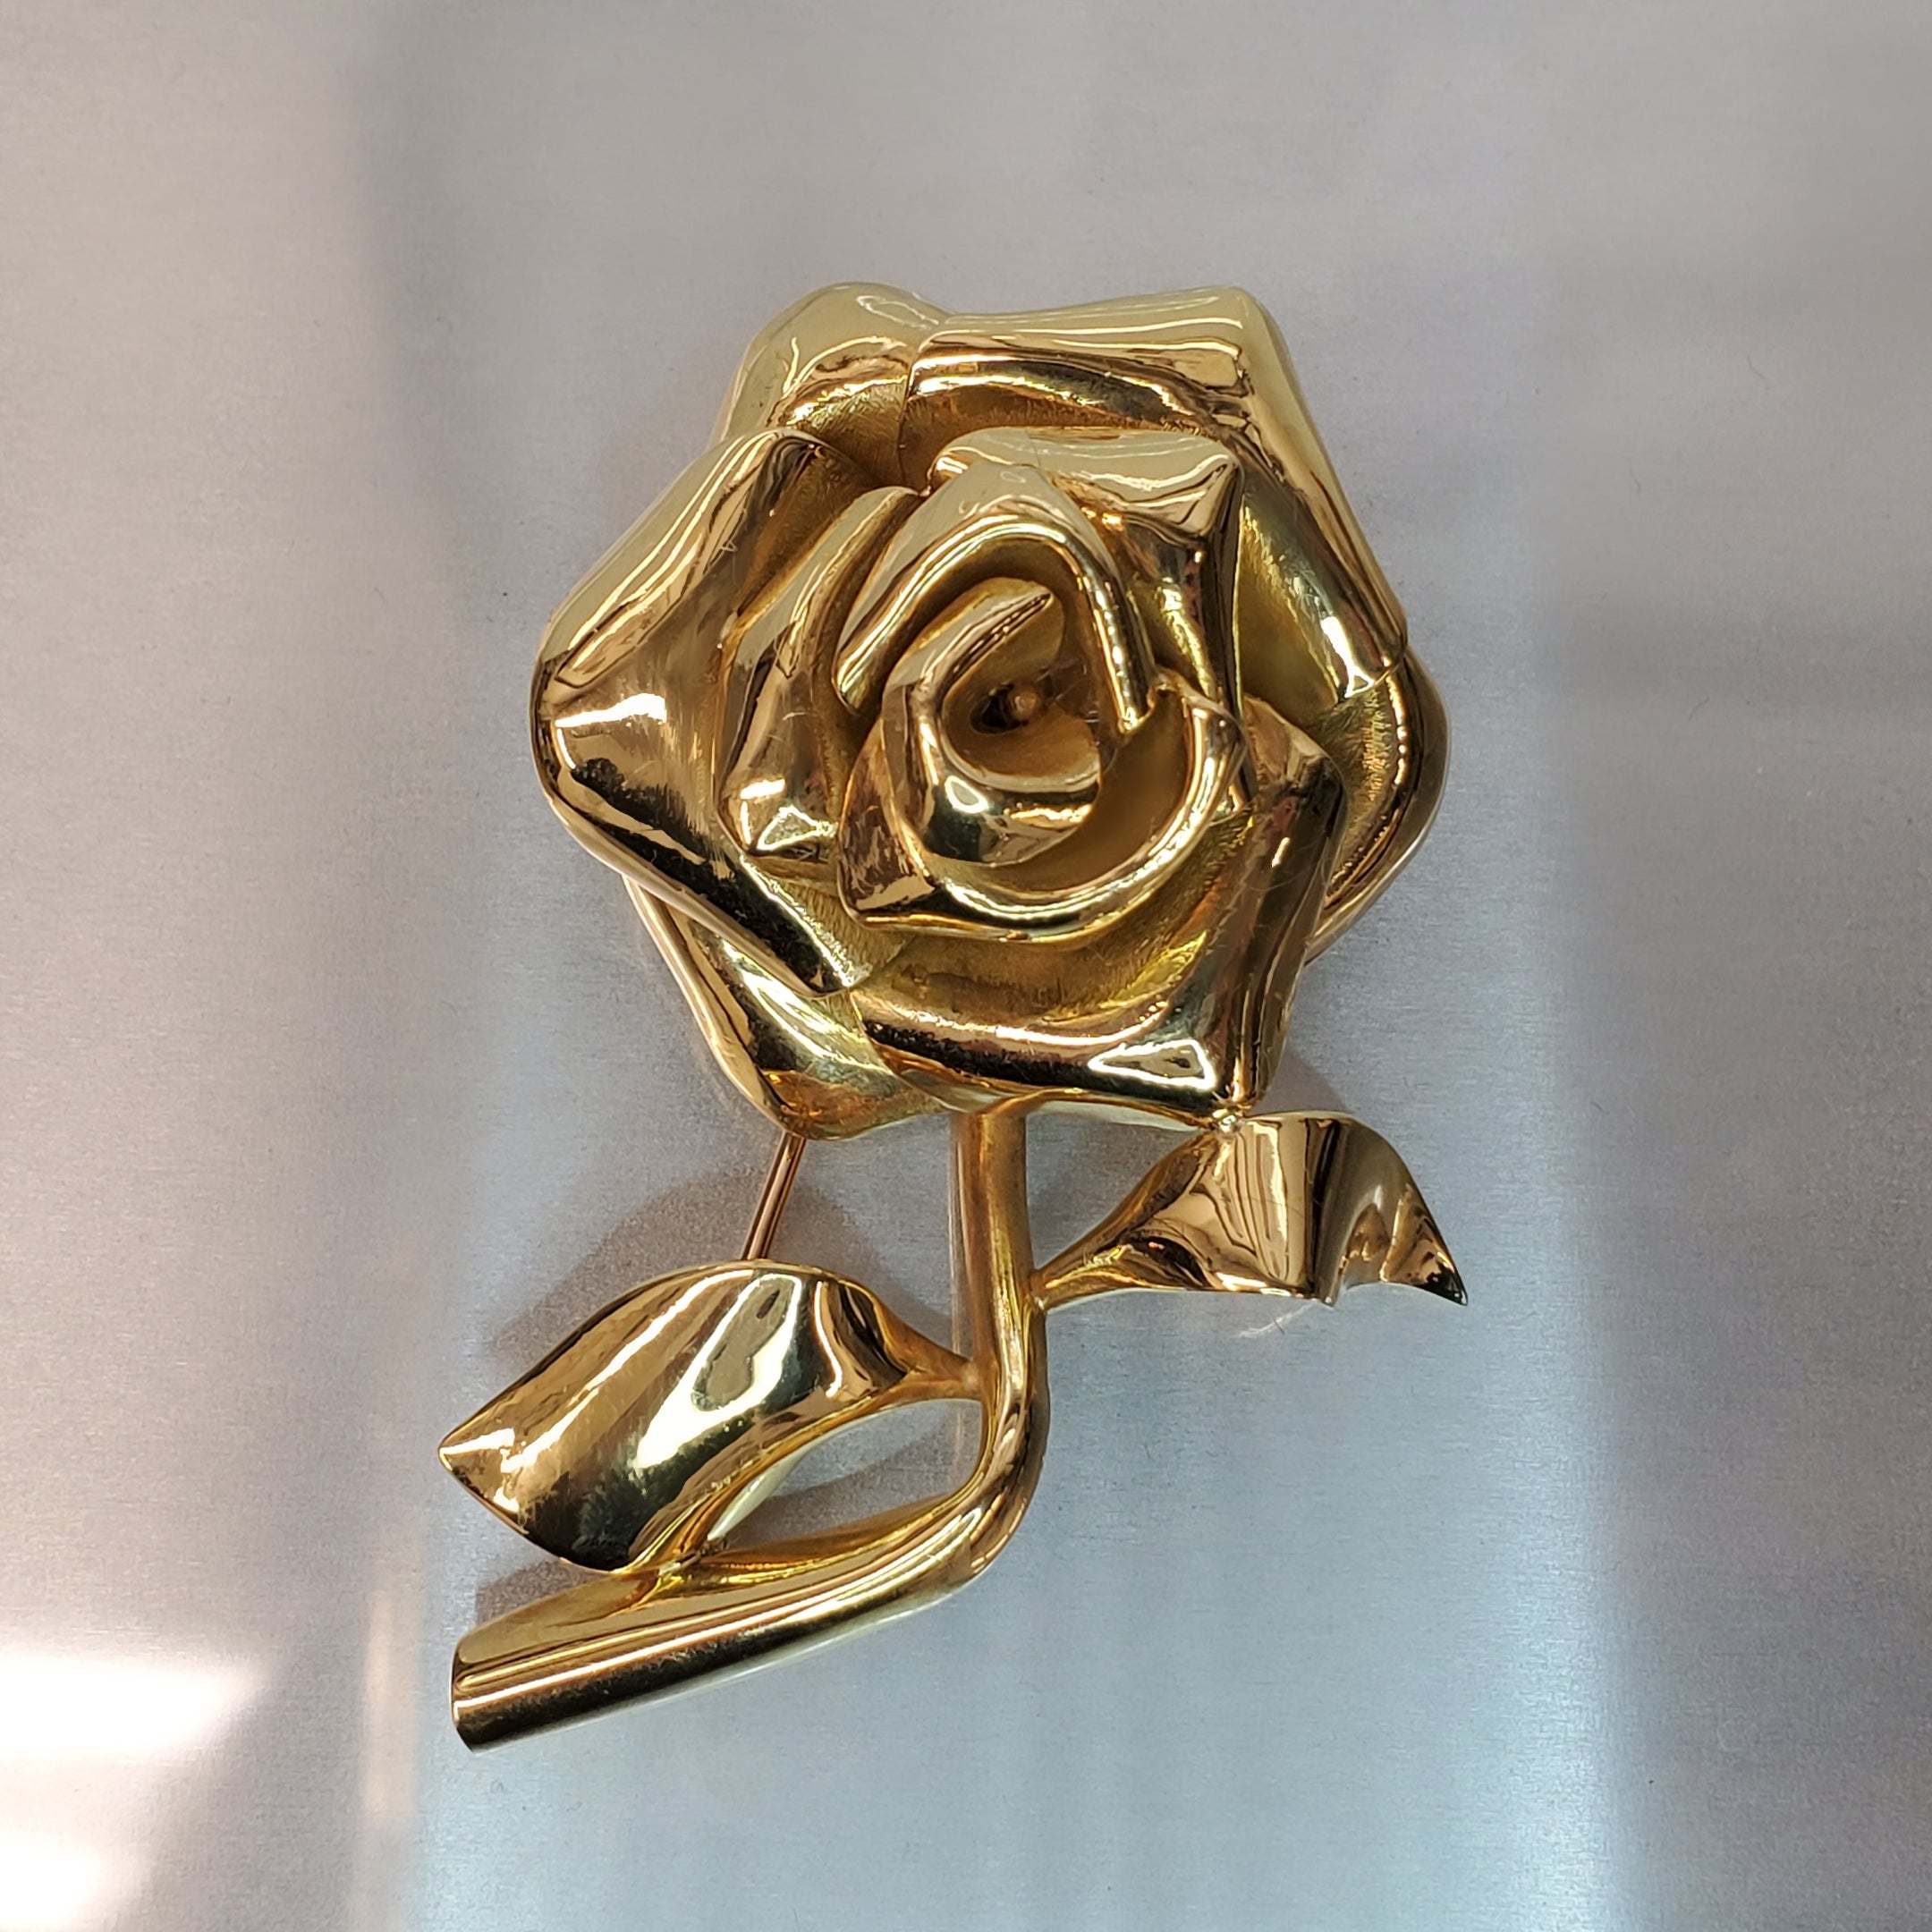 18 karat yellow gold, large rose flower design, estate brooch